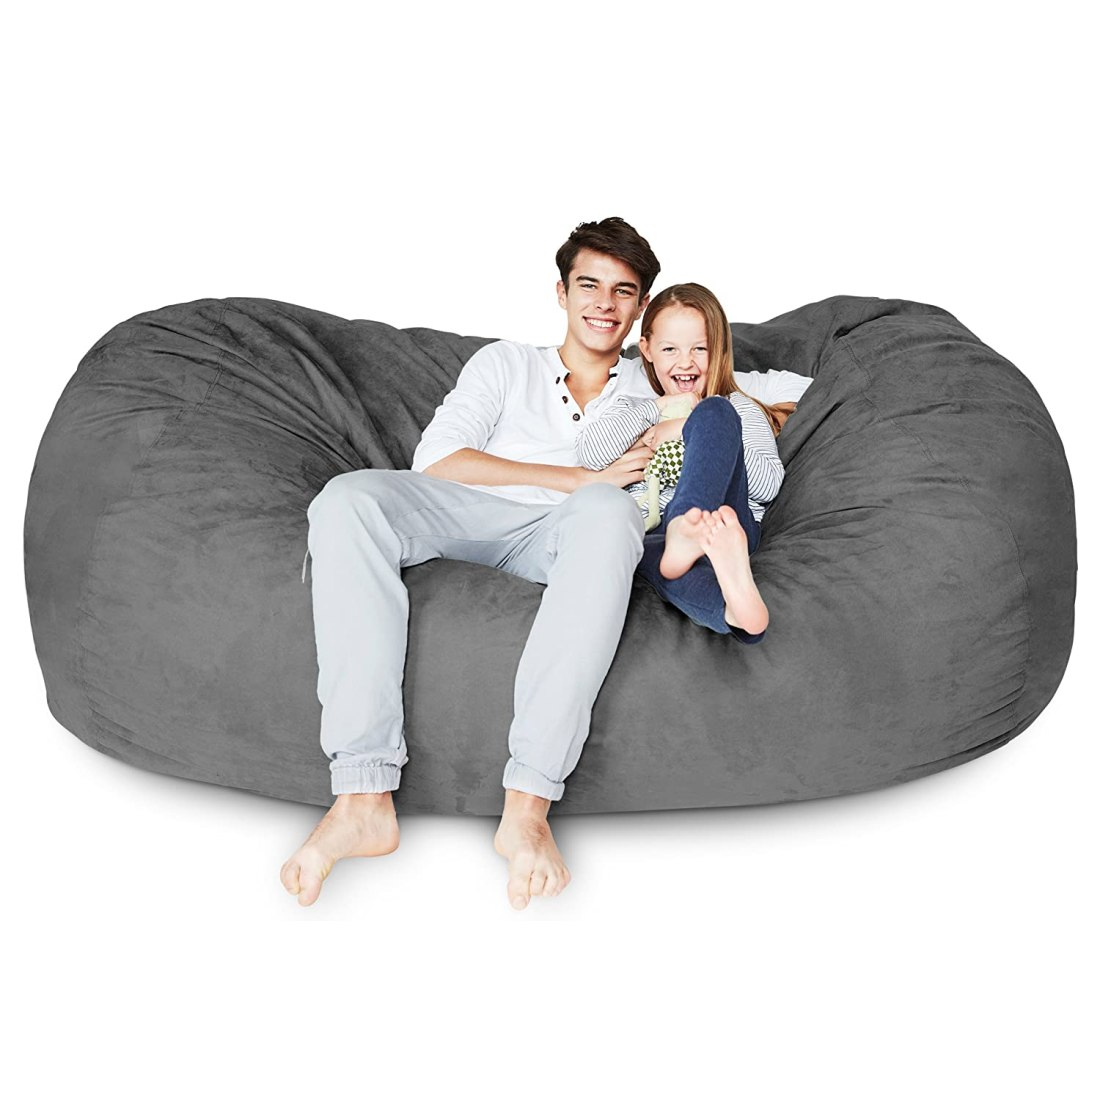 Man Sitting On Flash Furniture Bean Bag Chair